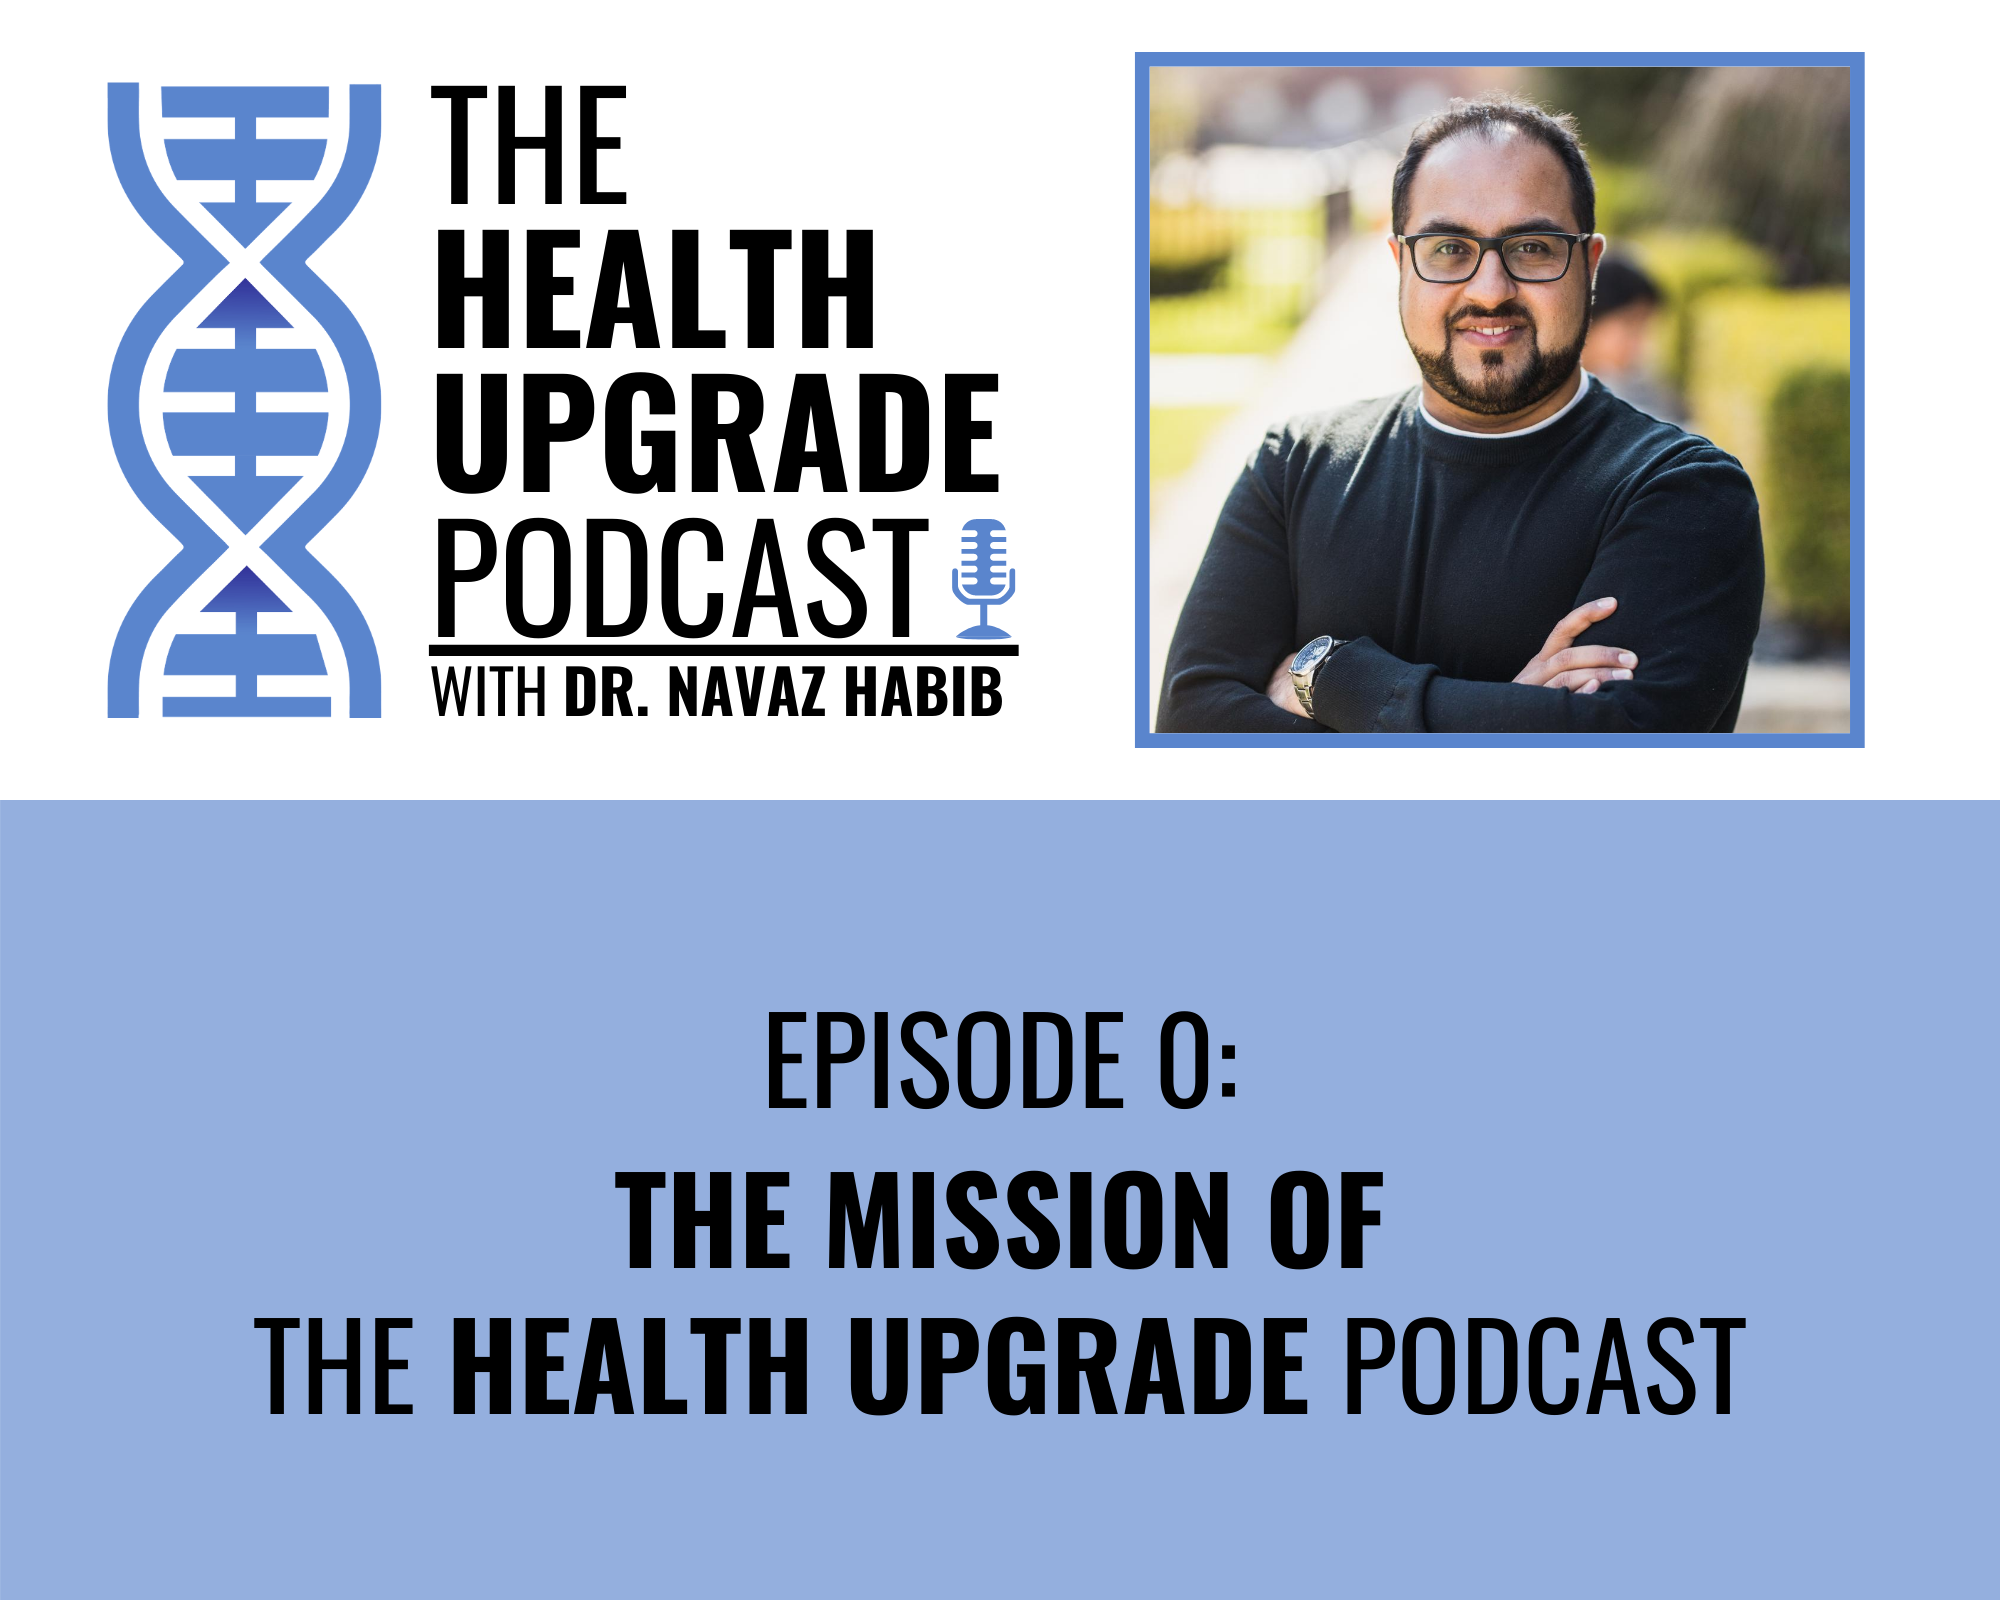 The Mission of The Health Upgrade Podcast